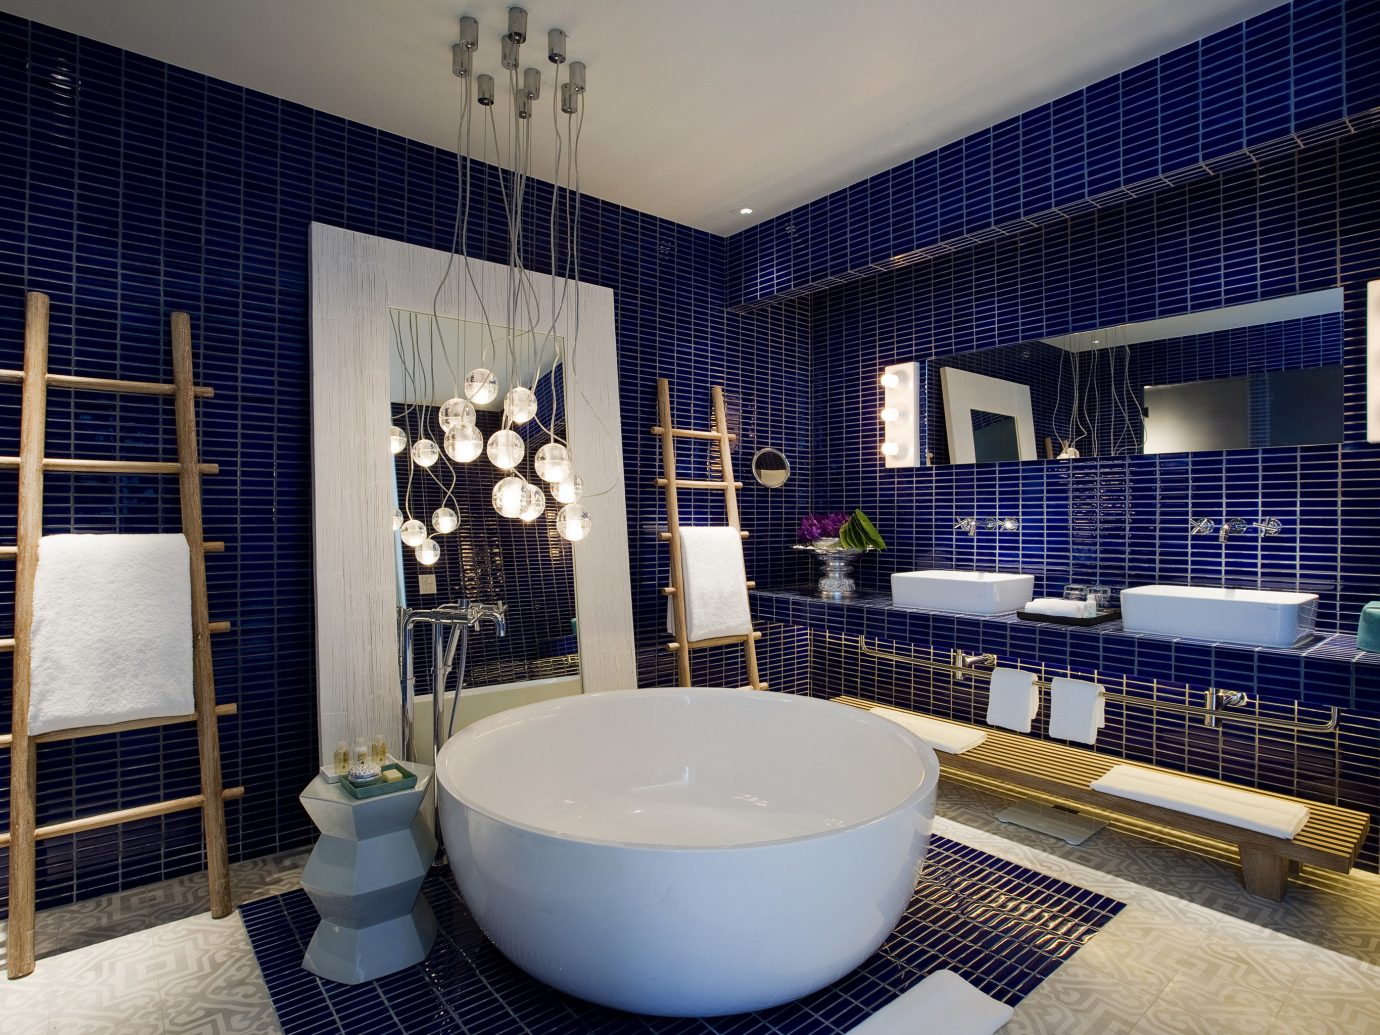 Beach Hotels Phuket Thailand indoor floor room bathroom interior design Architecture estate home real estate angle interior designer house window tile tub tiled bathtub